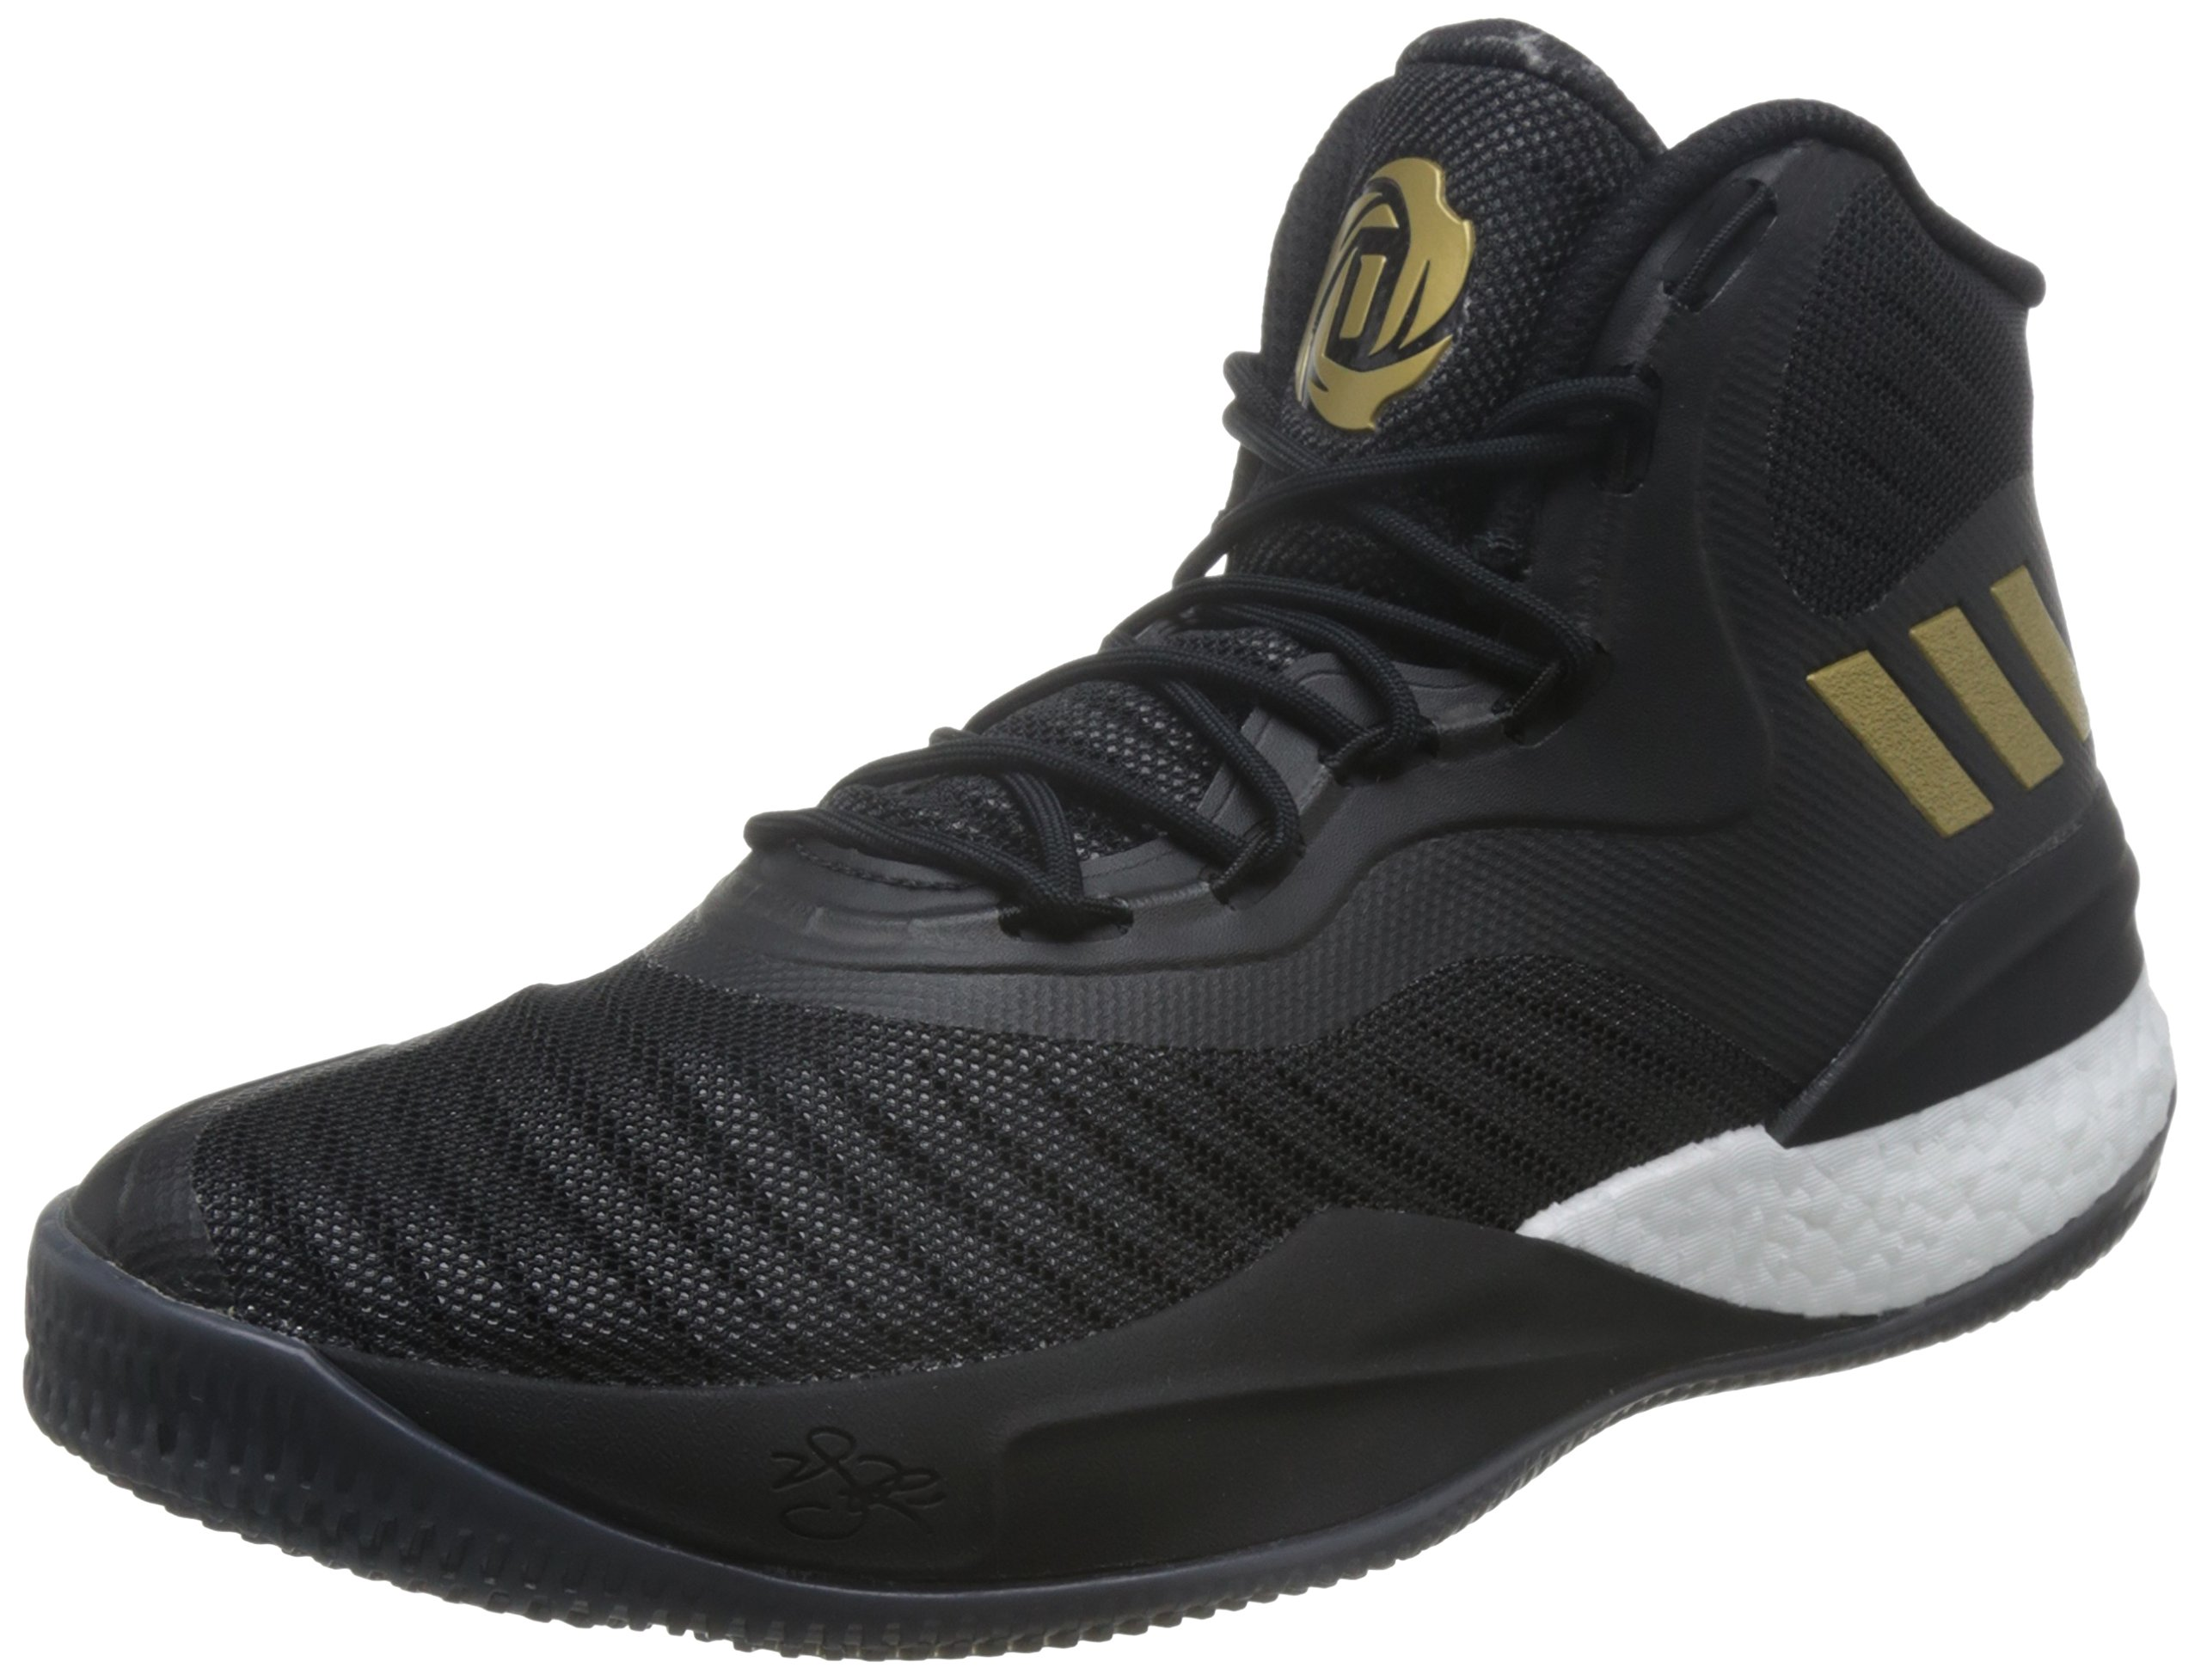 on sale bb7a9 7295a Adidas Men s D Rose 8 Basketball Shoes